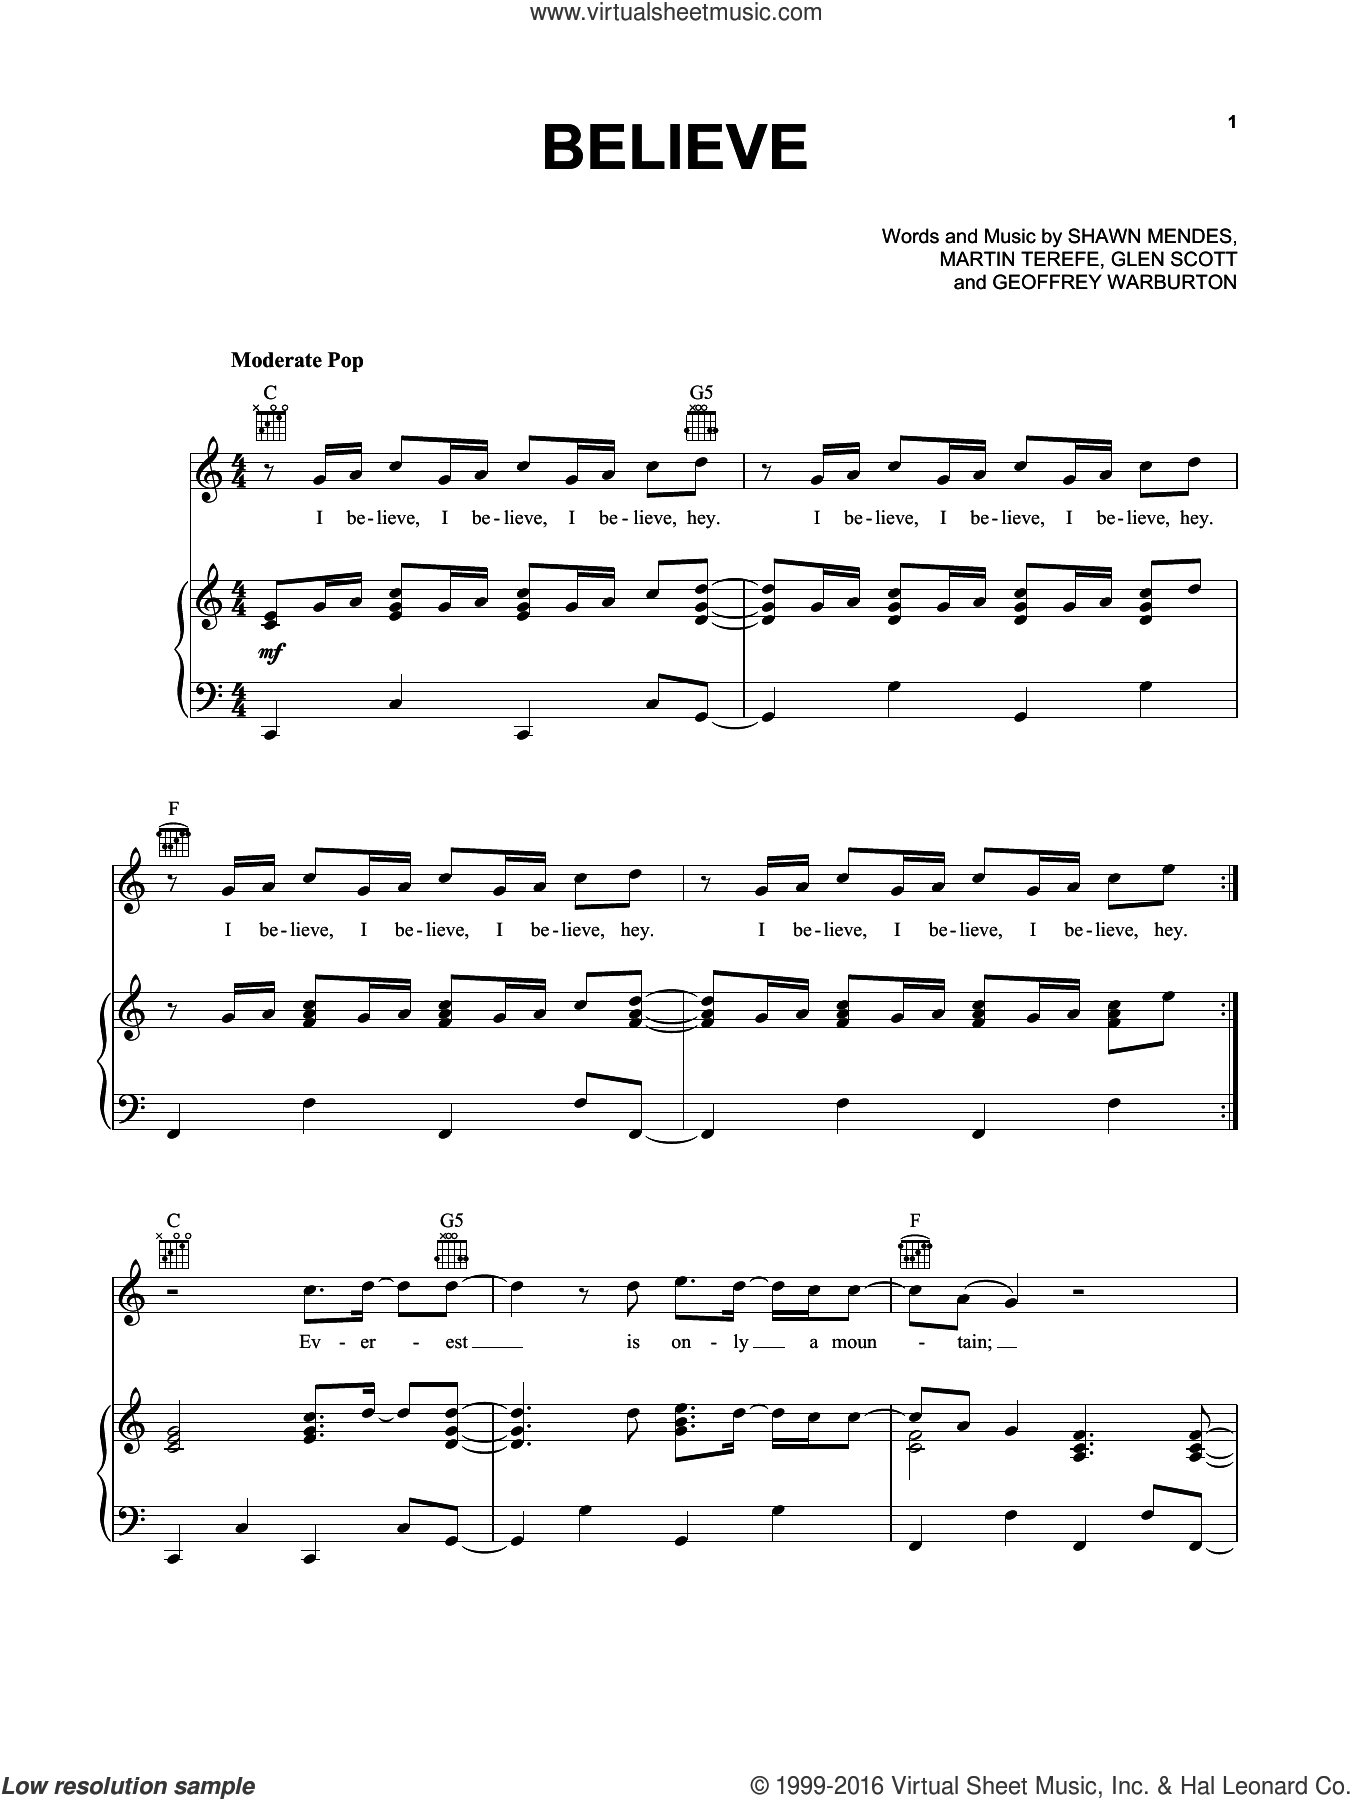 Believe sheet music for voice, piano or guitar by Shawn Mendes, Geoffrey Warburton, Glen Scott and Martin Terefe, intermediate skill level